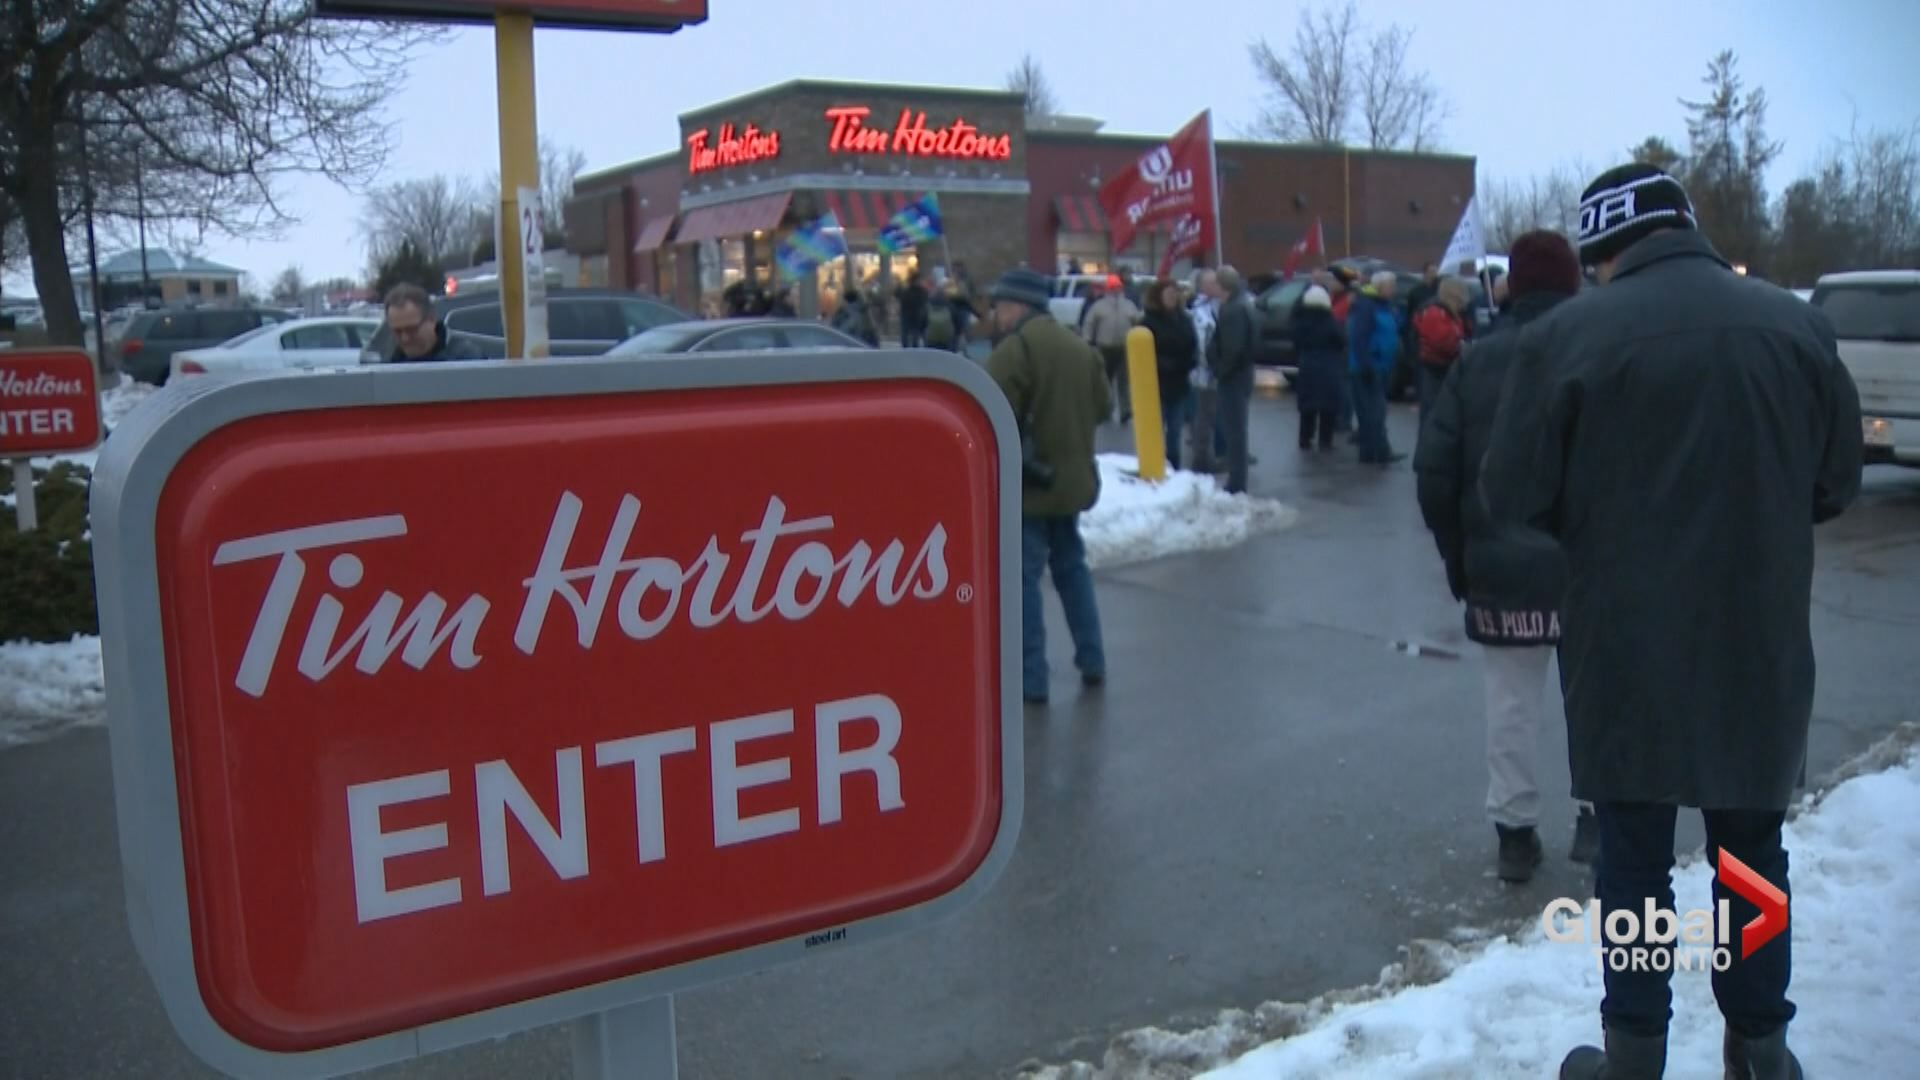 Halifax protesters march in solidarity with Ontario Tim Hortons workers